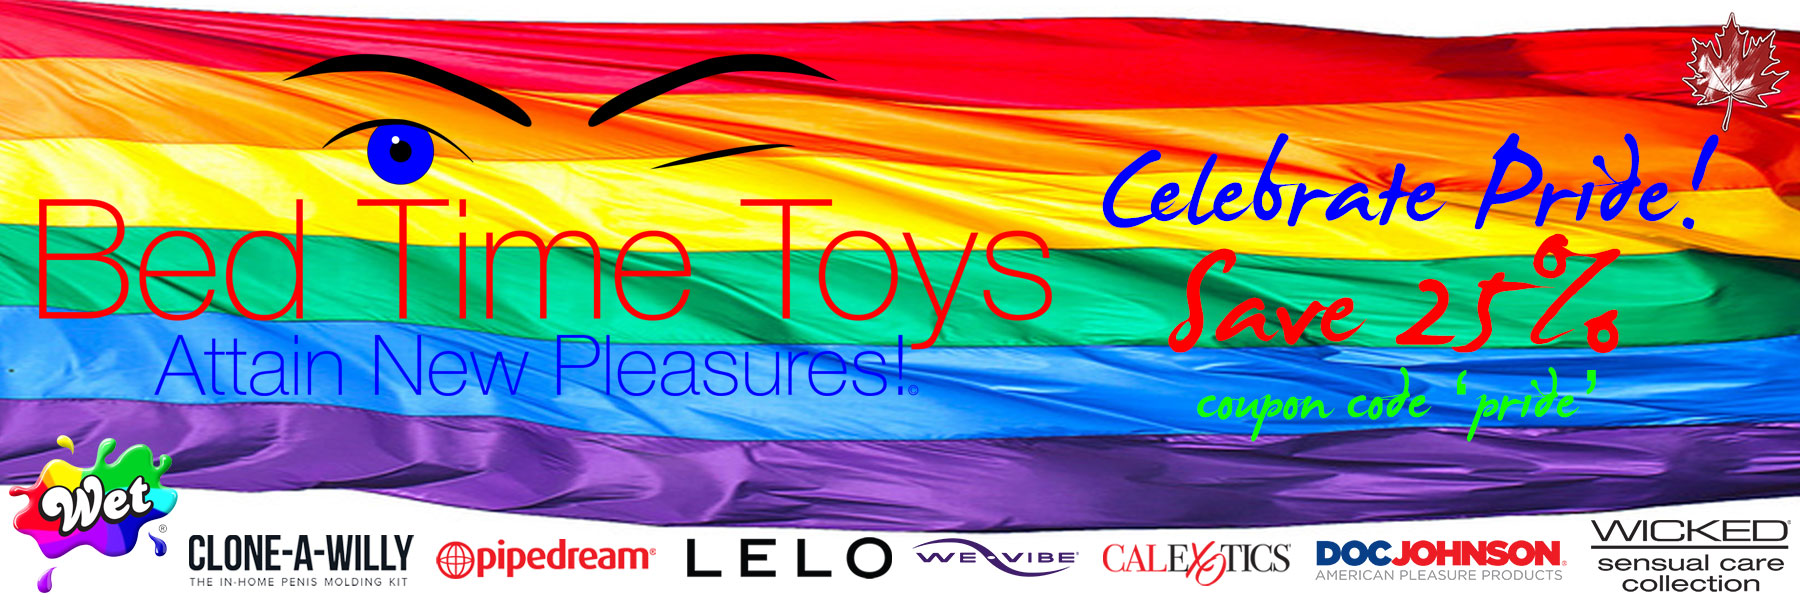 Bed Time Toys, Gay Pride, Sex Toys, Canada